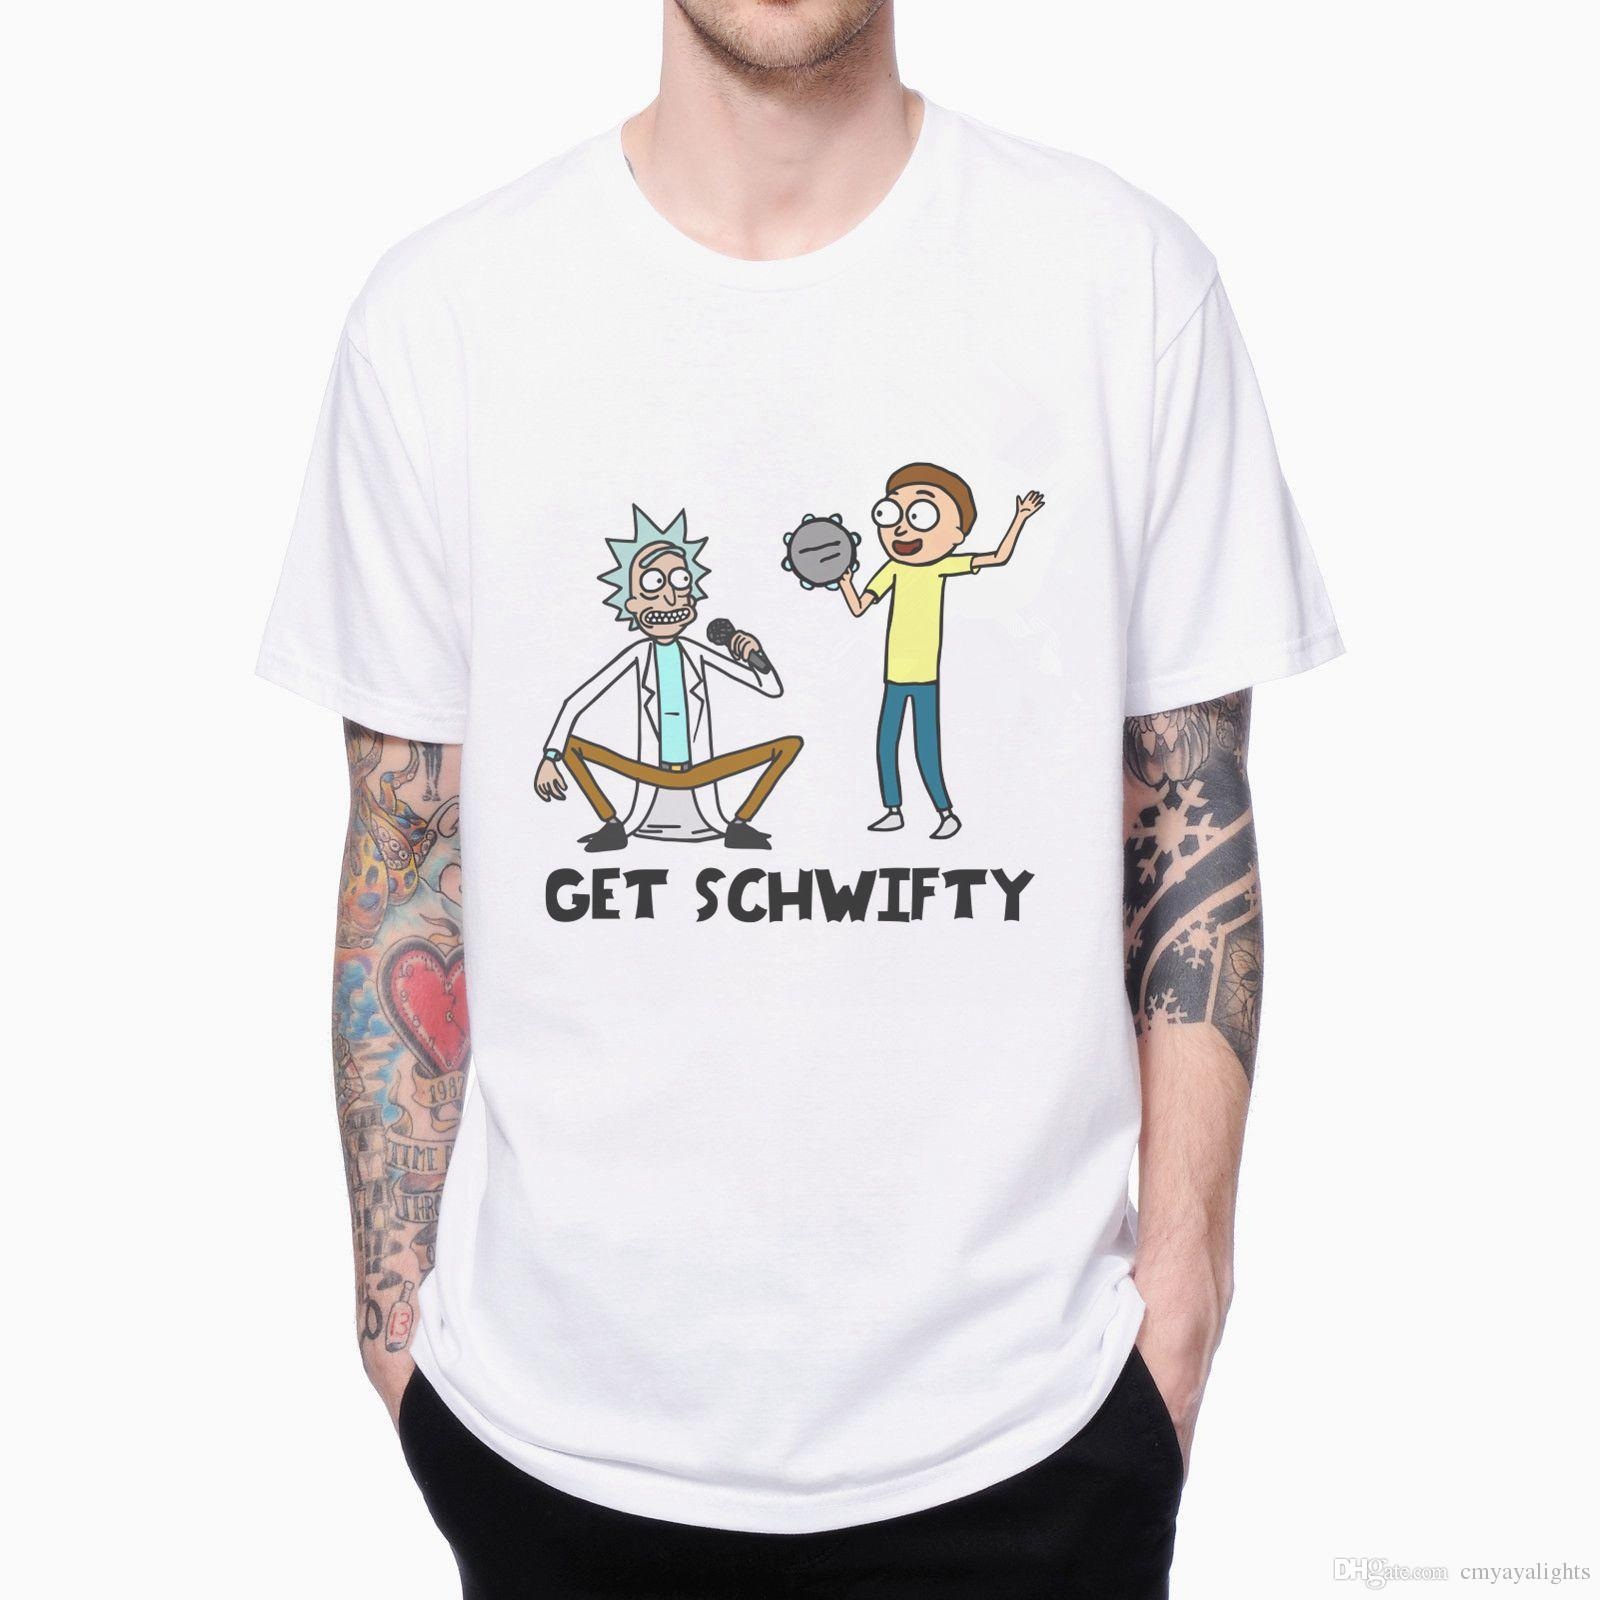 GET SCHWIFTY RICK AND MORTY T-SHIRT 1609520 CARTOON 3D PRINTED Men's T-shirts FASHION MALE SHORT SLEEVE O-NECK WHITE TEE PLUS EUROPE SIZE